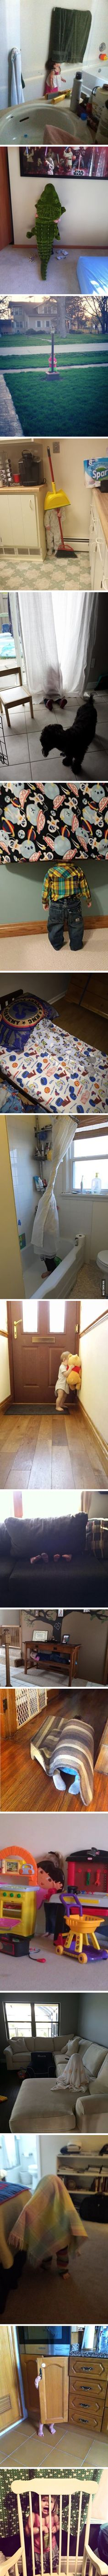 Kids who are terrible at hide and seek - 9GAG